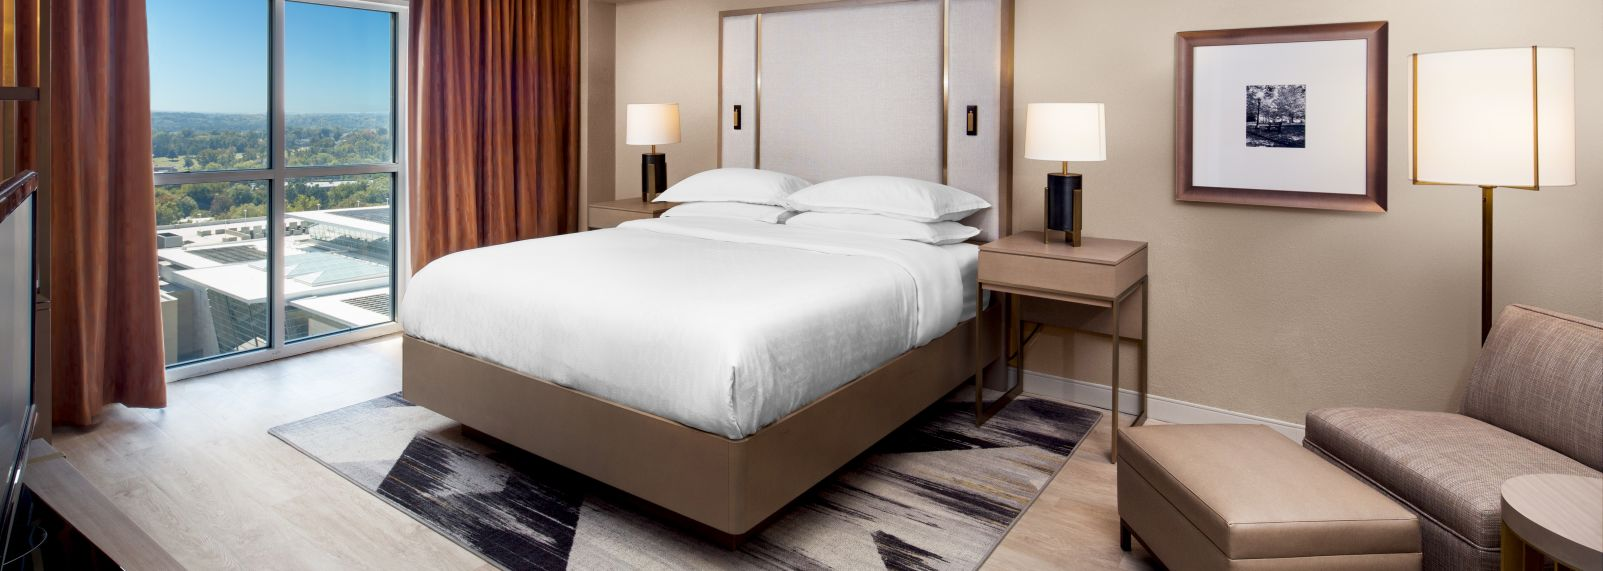 Downtown Raleigh, N.C., Hotels | Hotels Near the Raleigh Convention ...